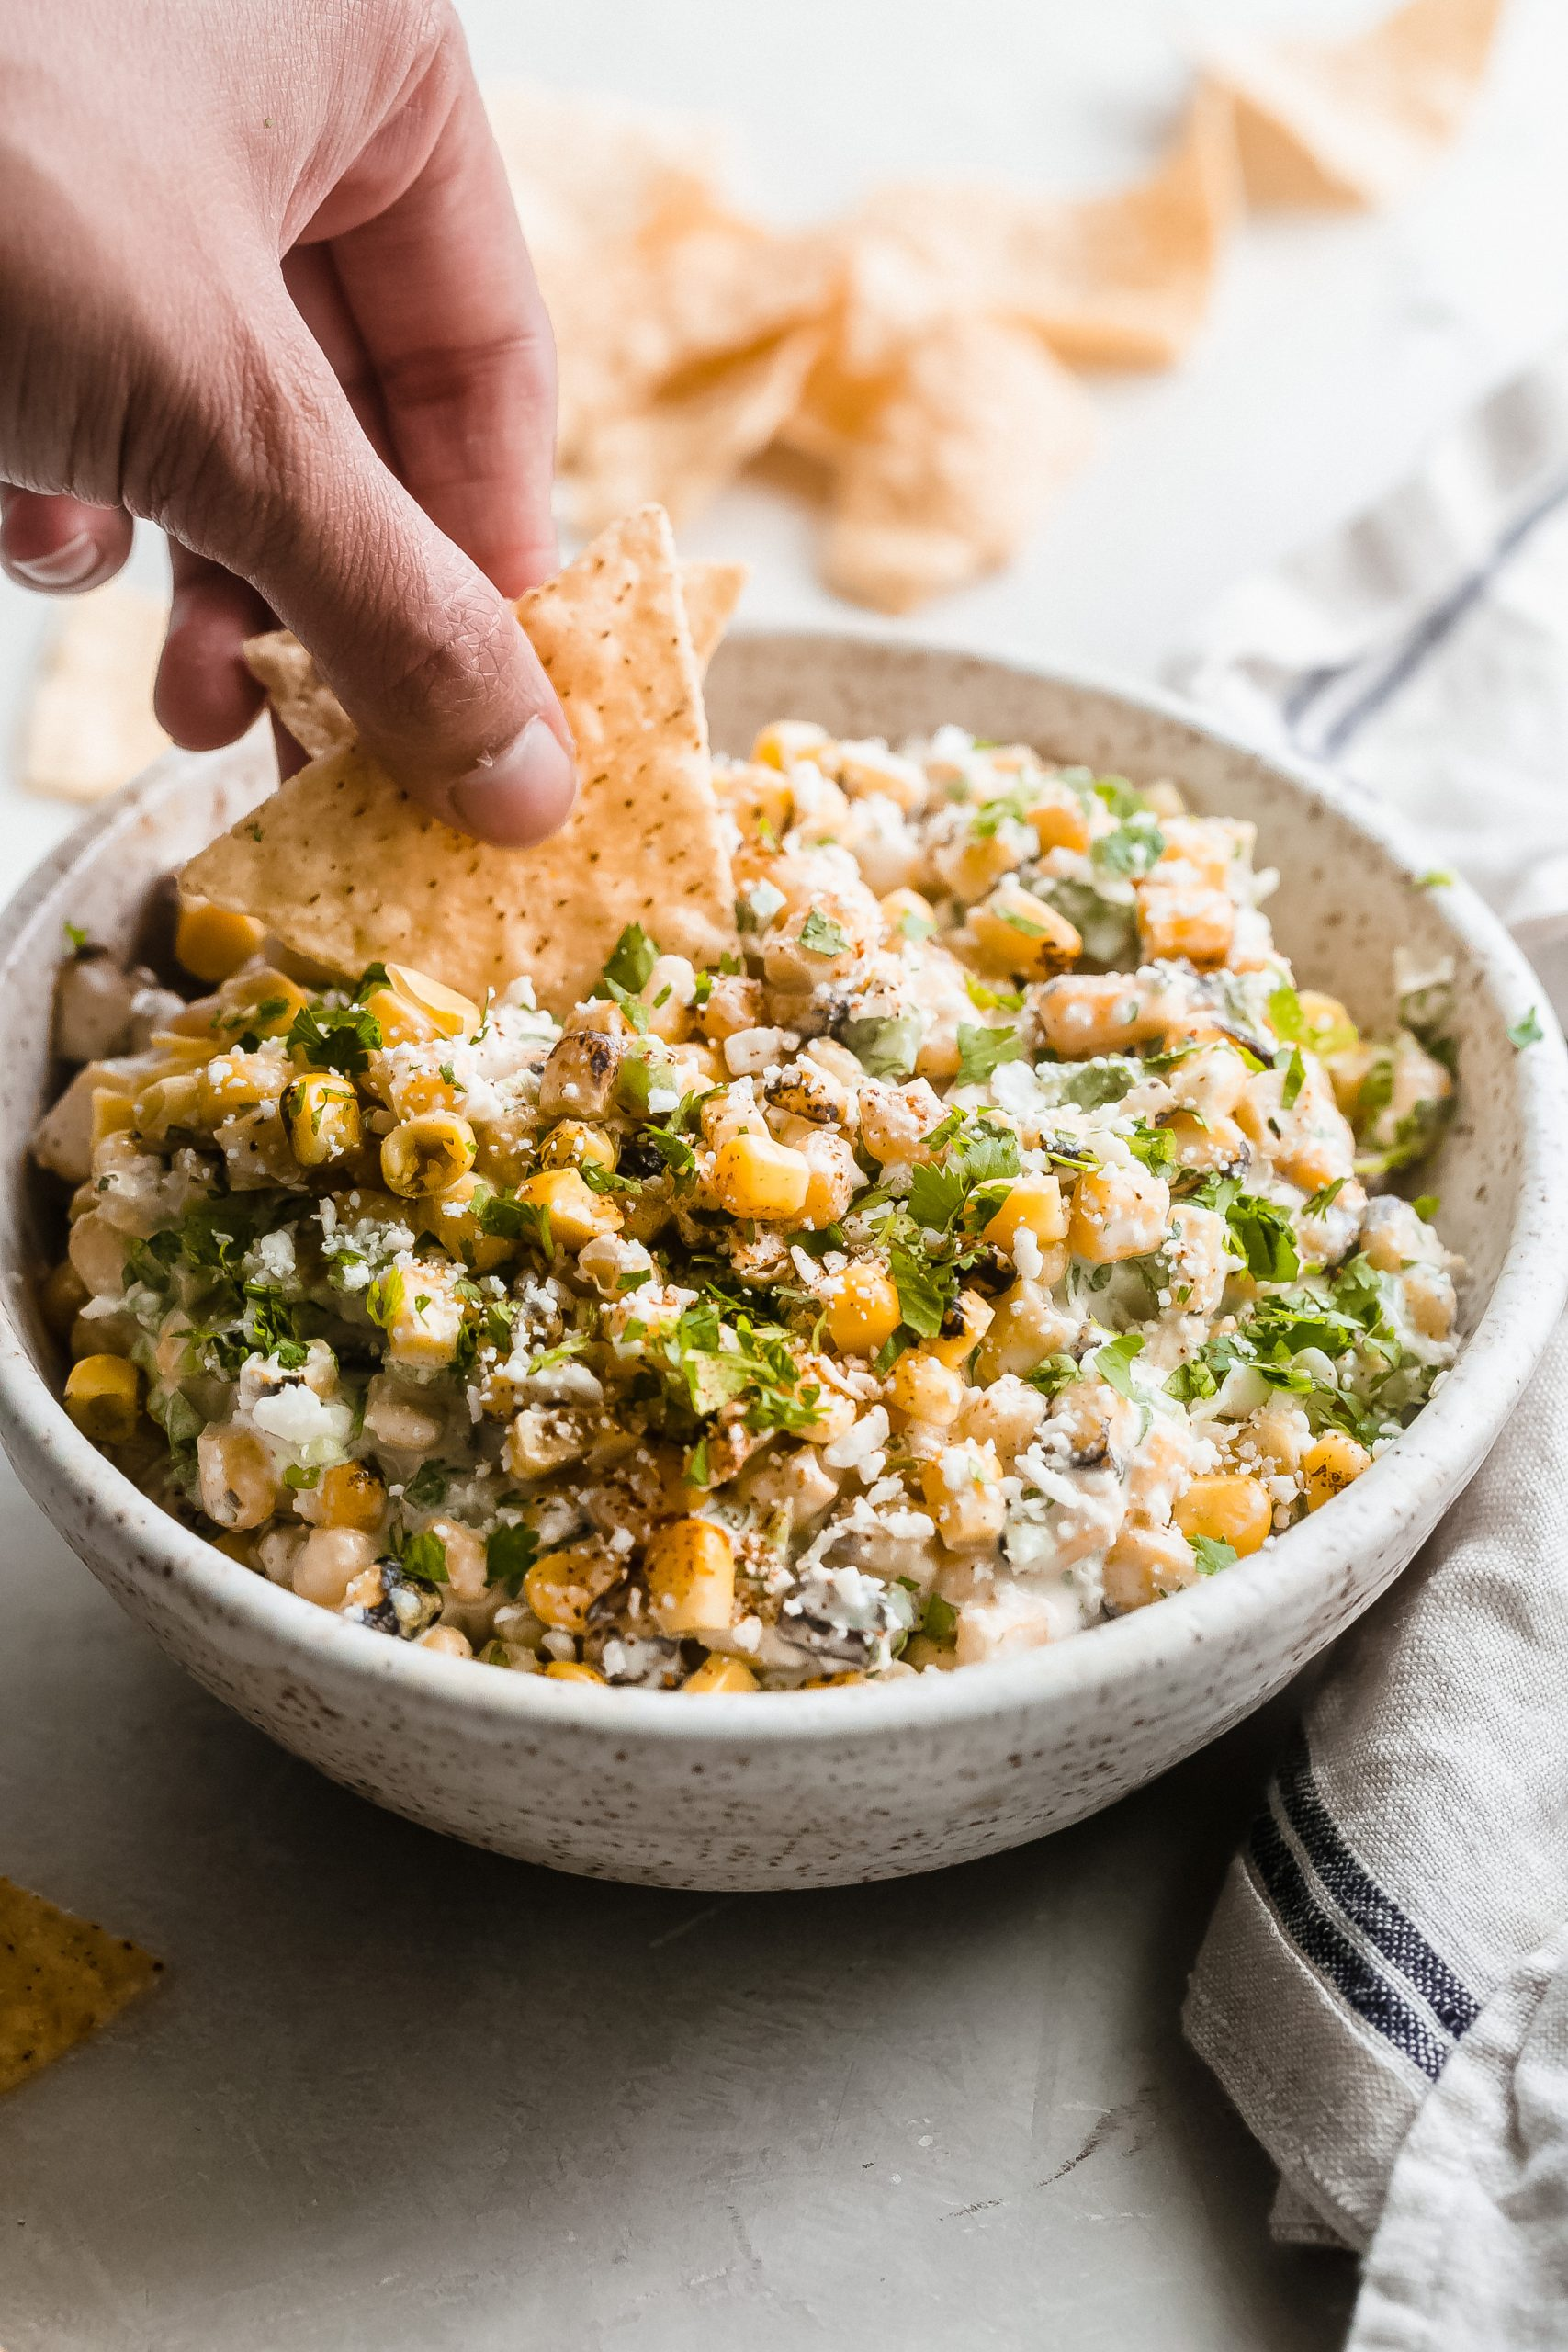 hand dipping corn tortillas in corn dip from bowl